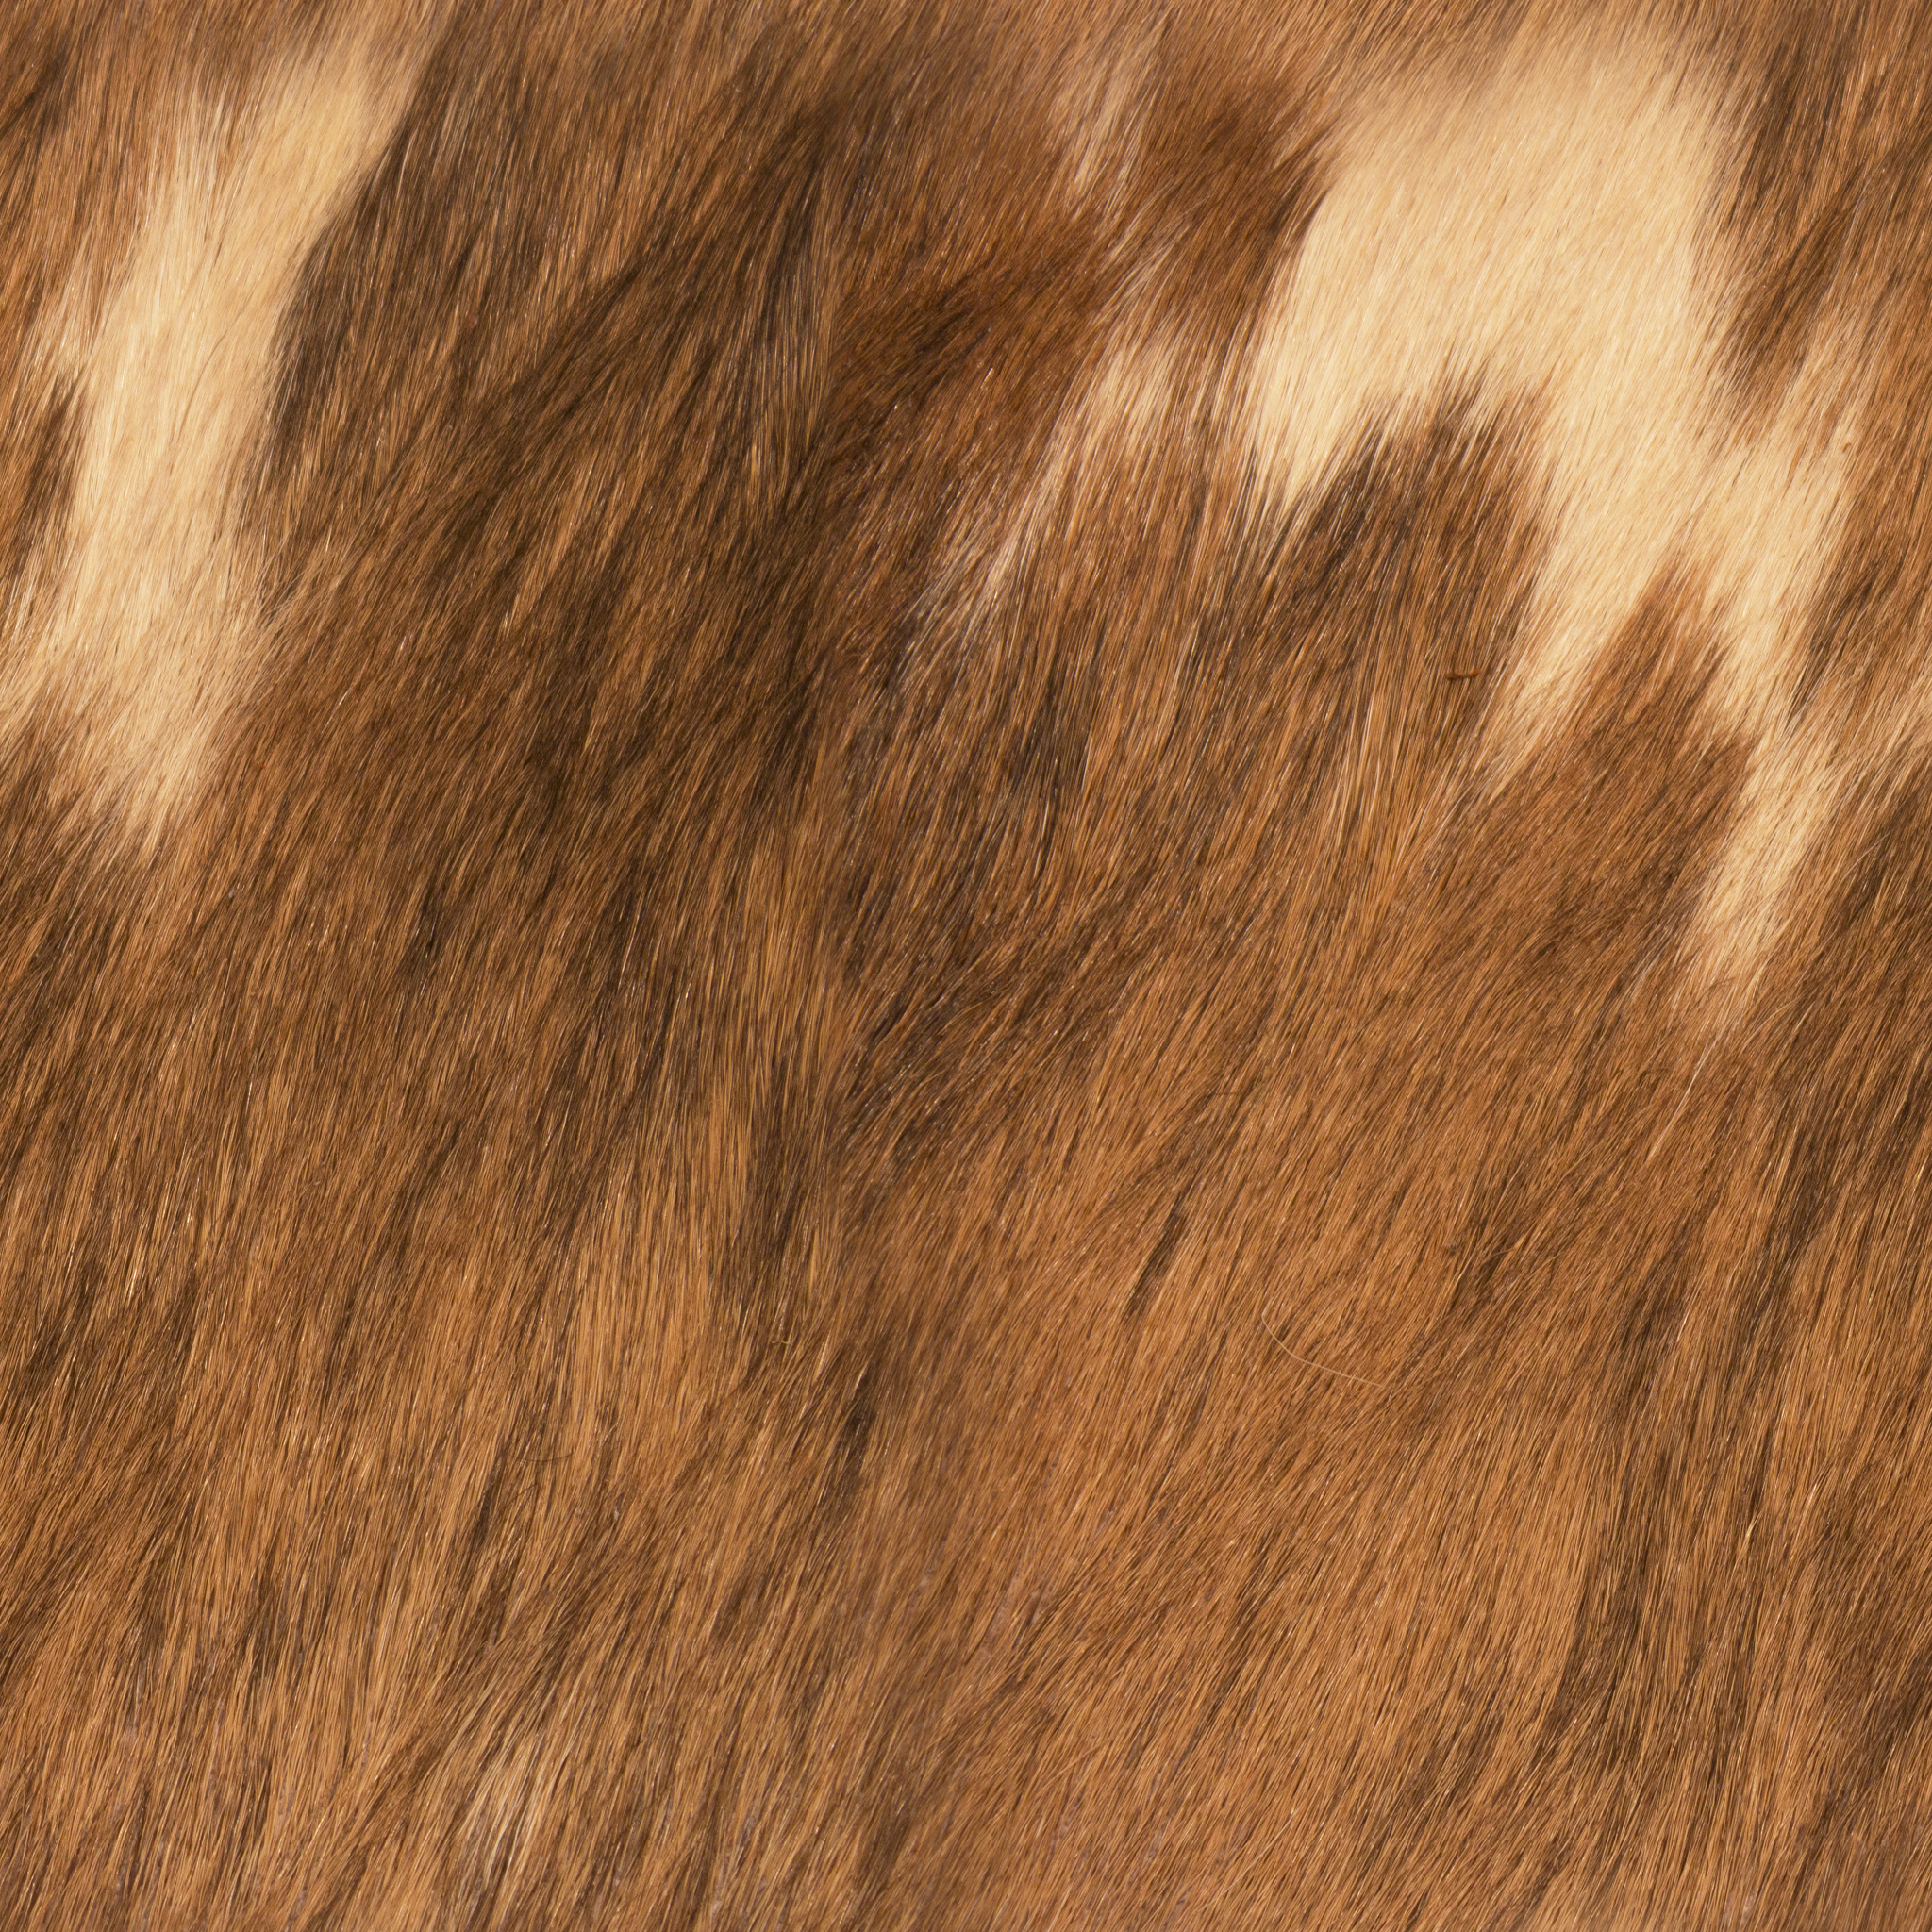 Furry Brown Leather.jpg